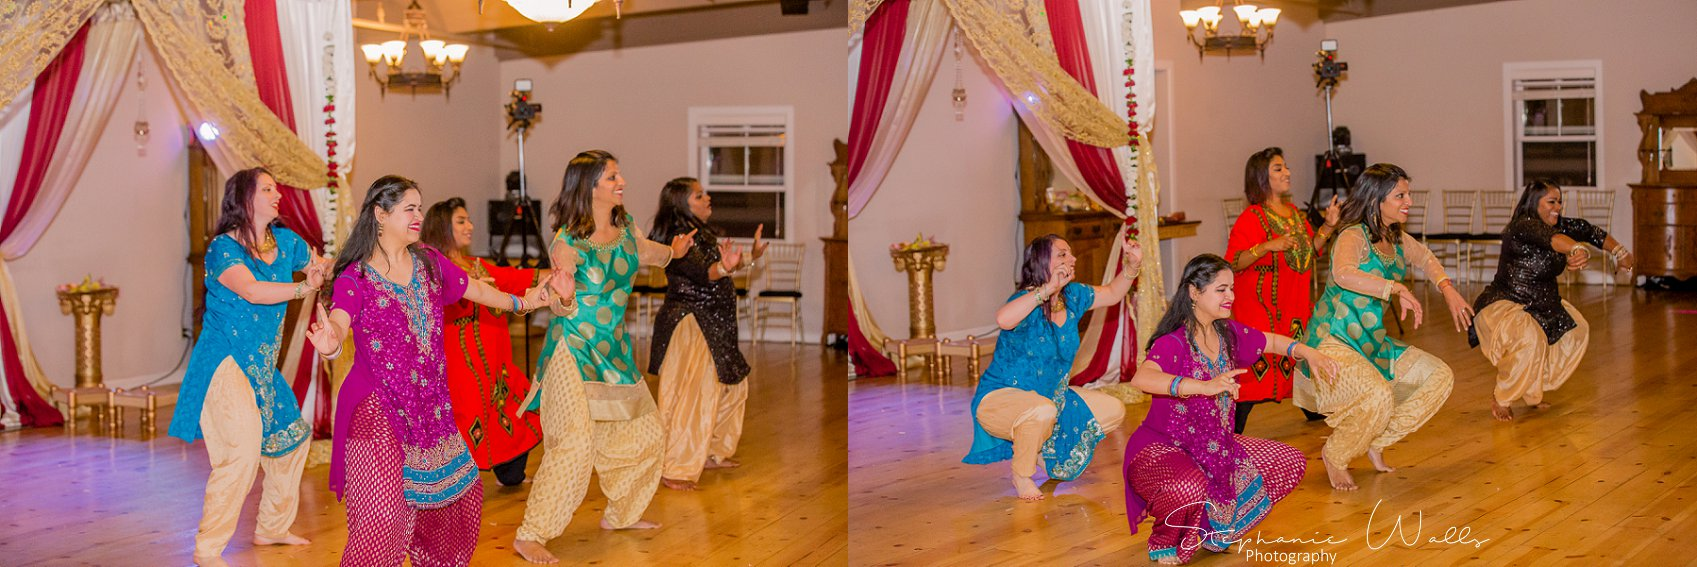 Kaushik 086 Snohomish Fusion Indian Wedding With Megan and Mo